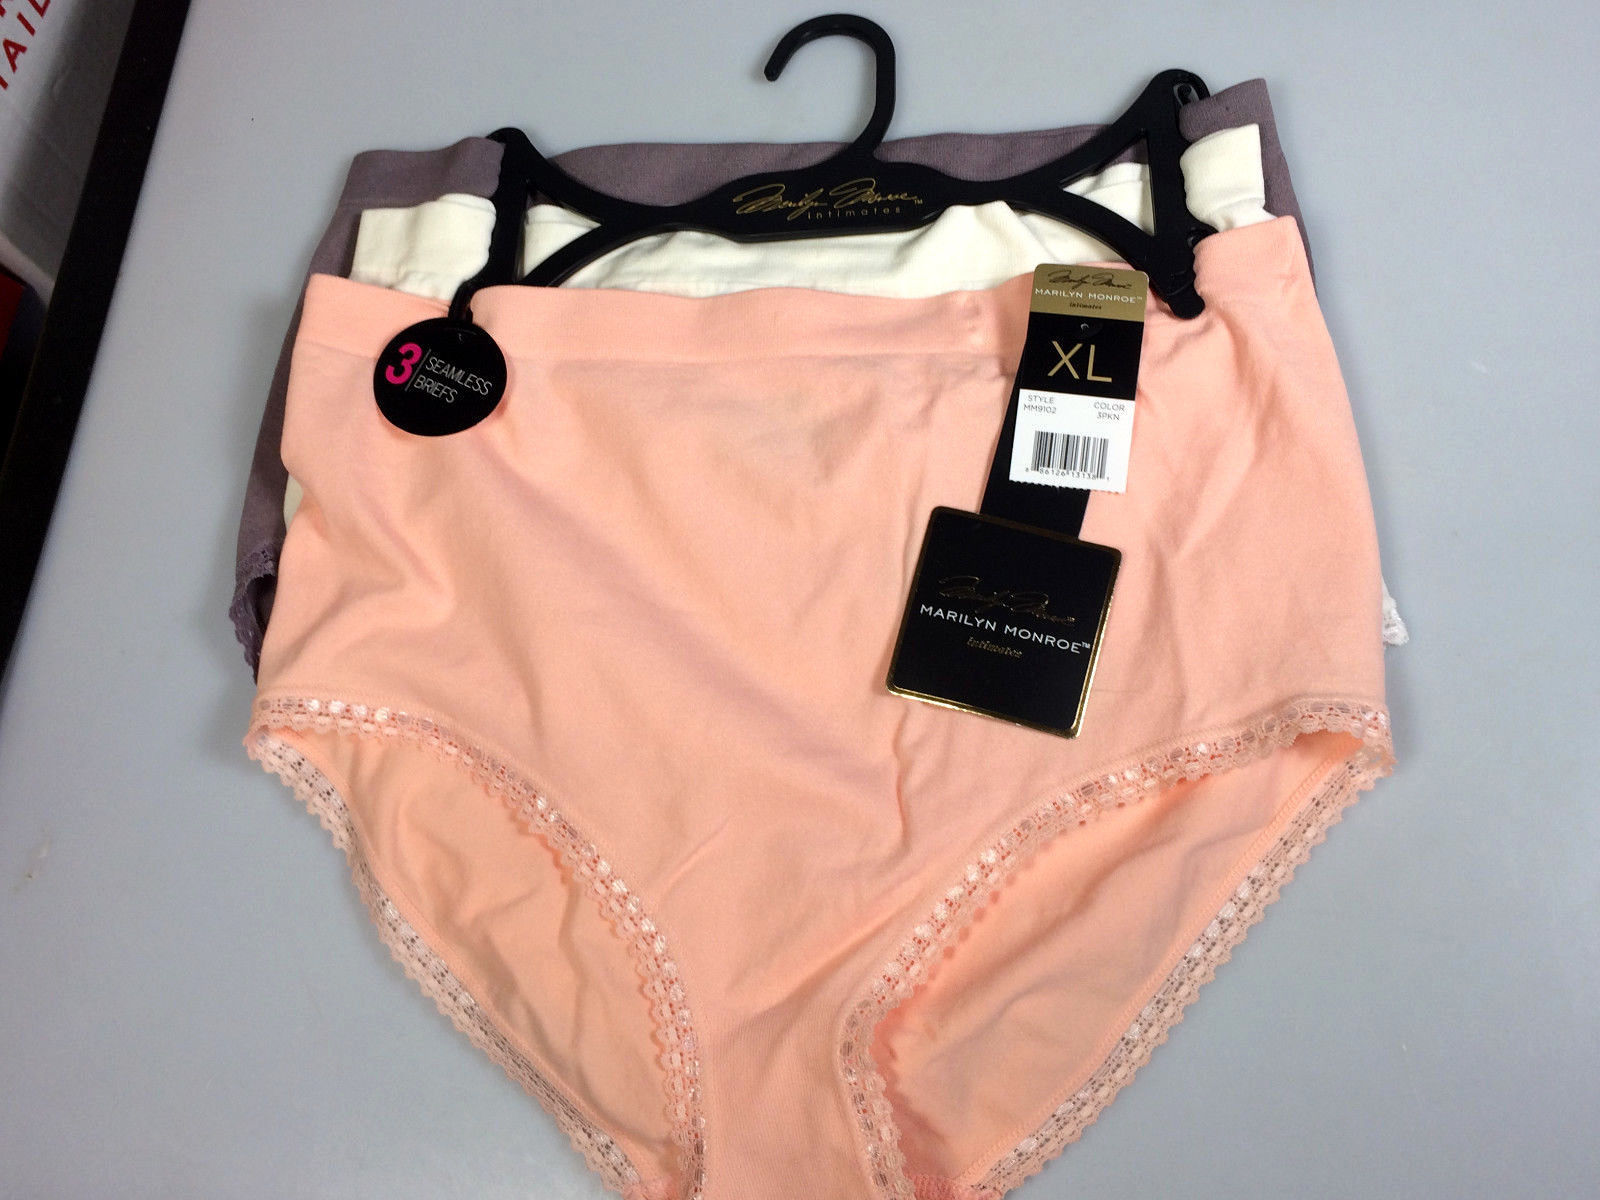 5208a41abc570 S l1600. S l1600. Previous. Womens panties XL